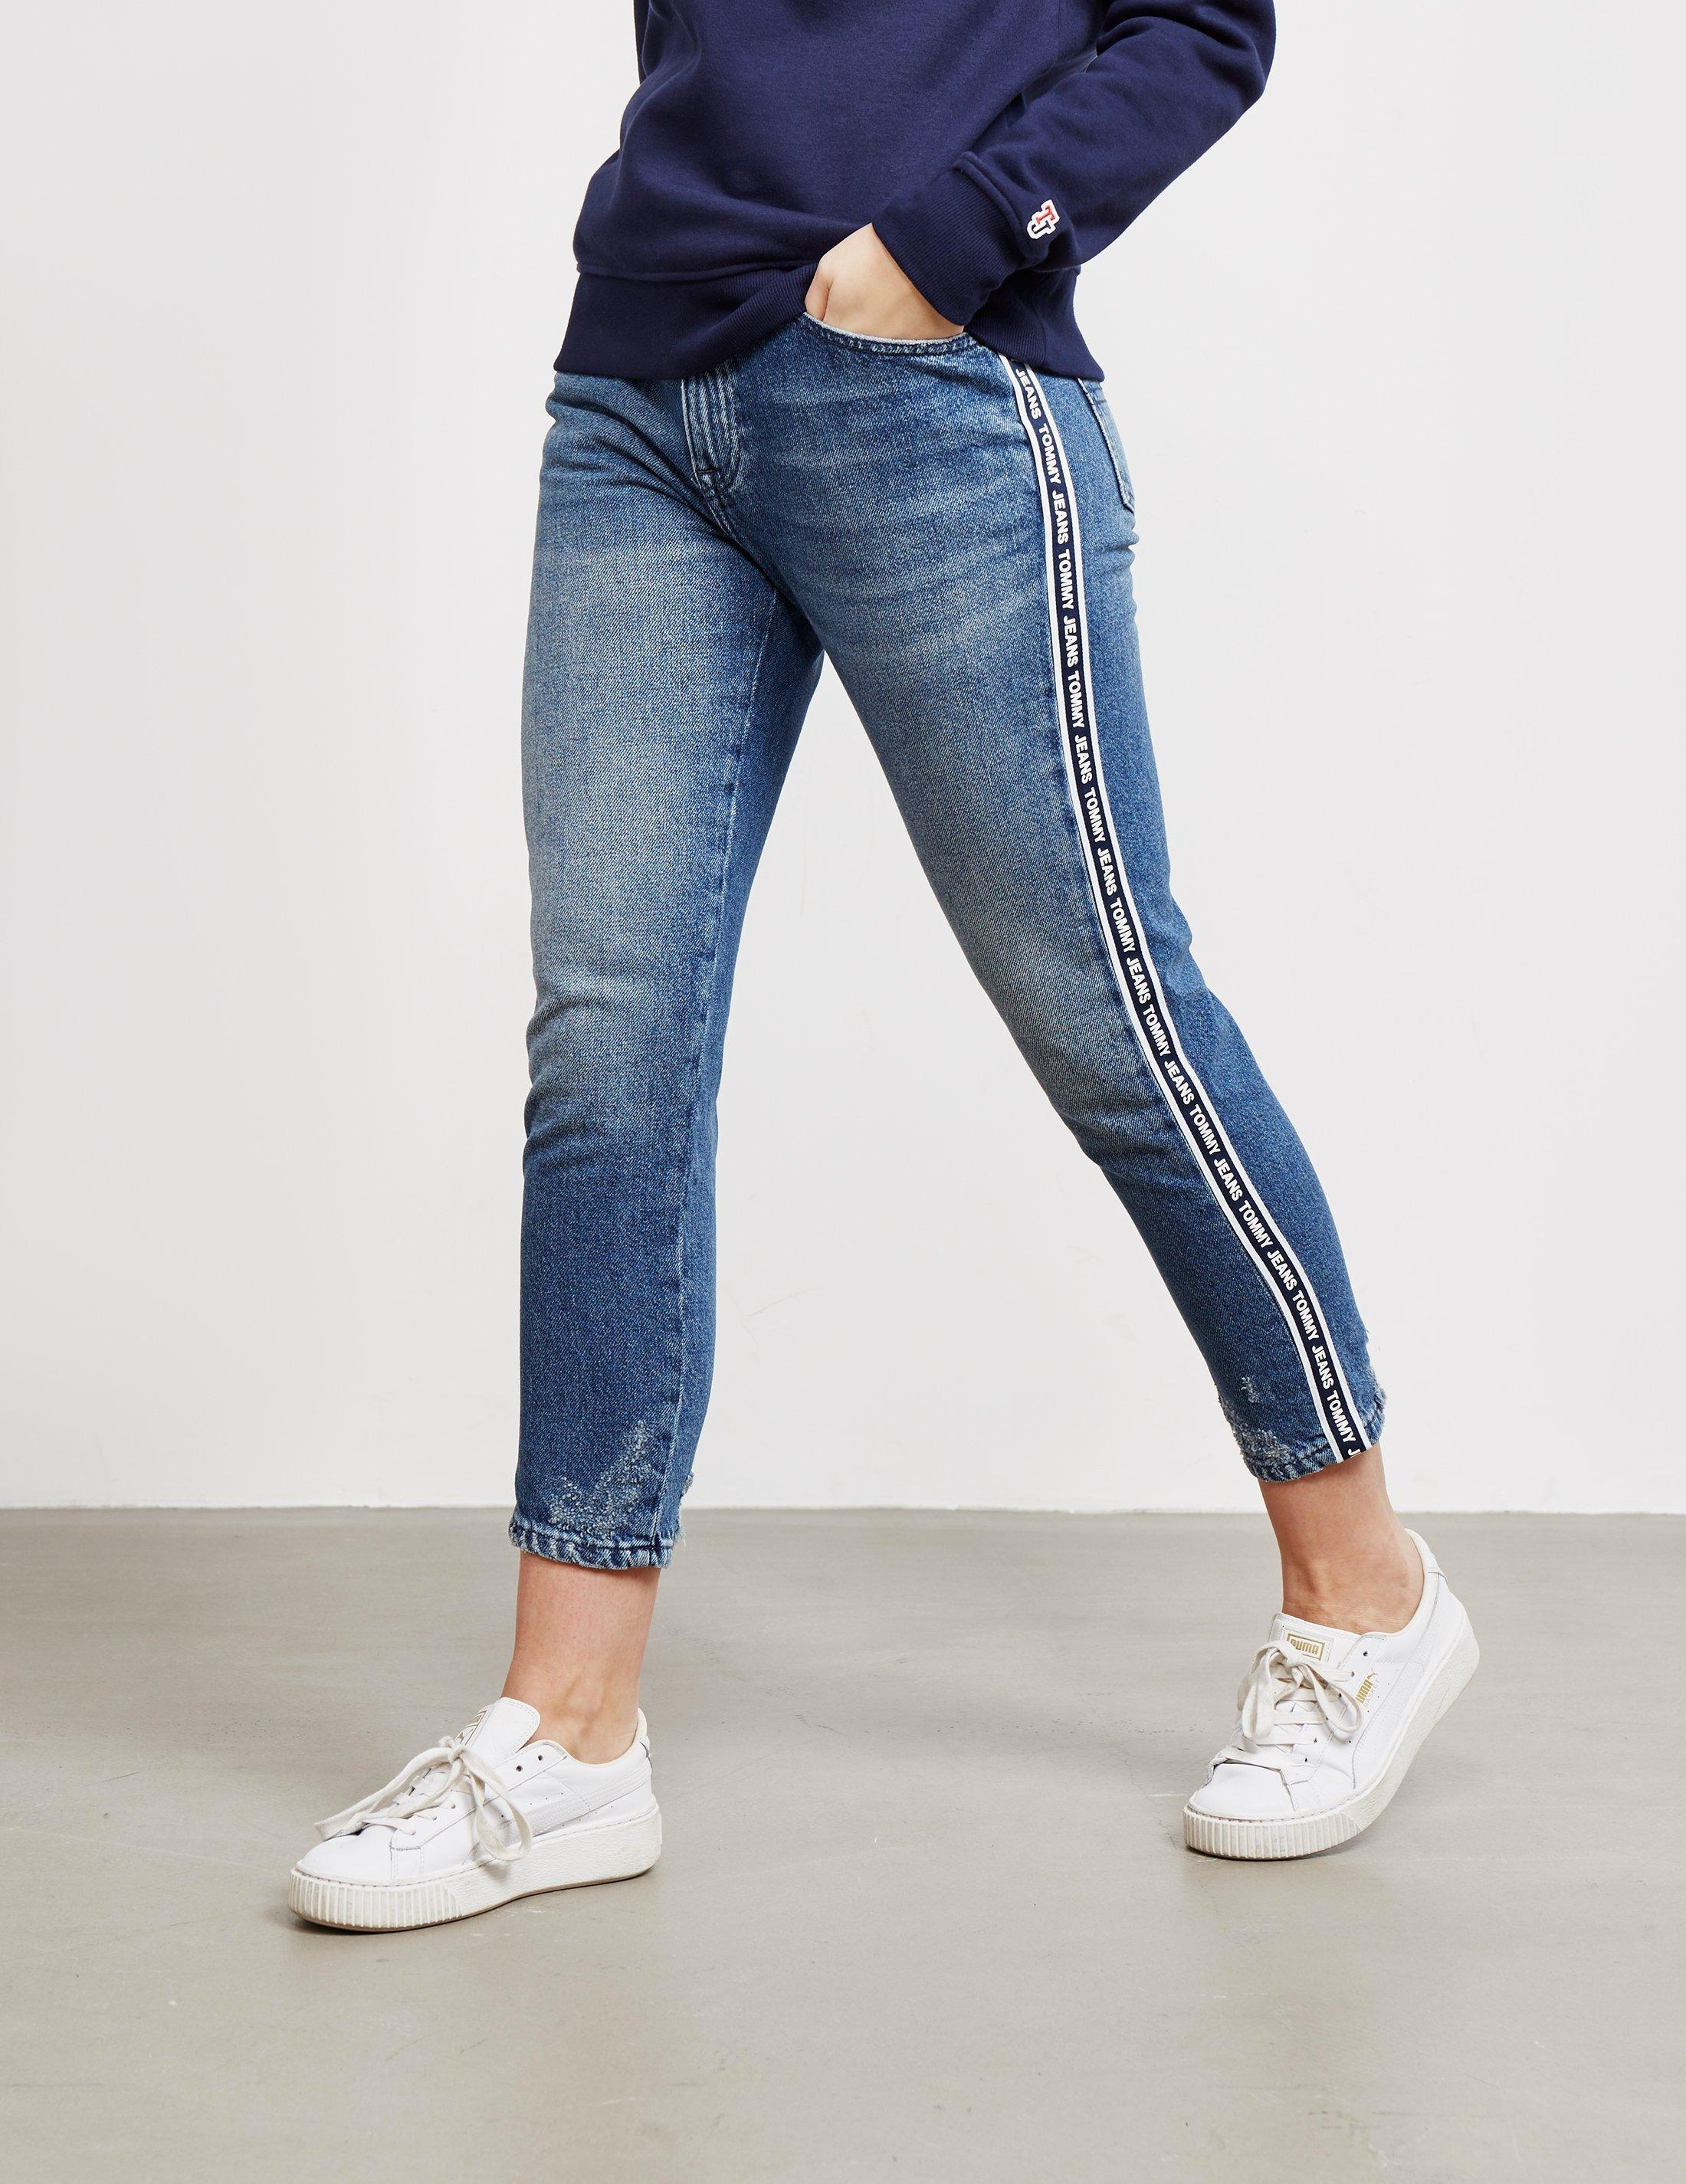 e3103622 Tommy Hilfiger Womens Izzy Tape Cropped Jeans Blue in Blue - Lyst